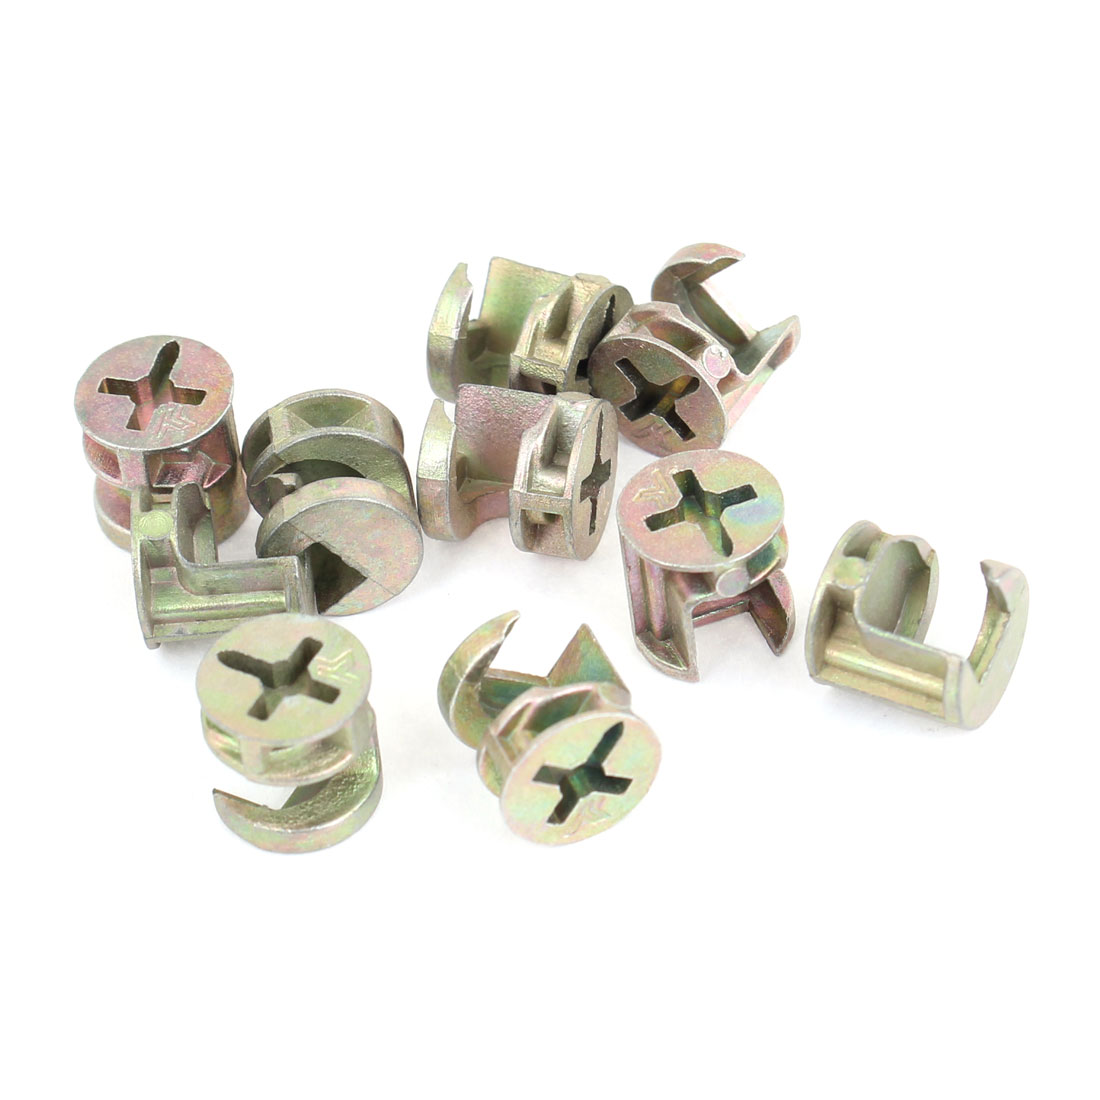 Hardware Parts 15mm Dia Furniture Connecting Cam Fittings 10PCS